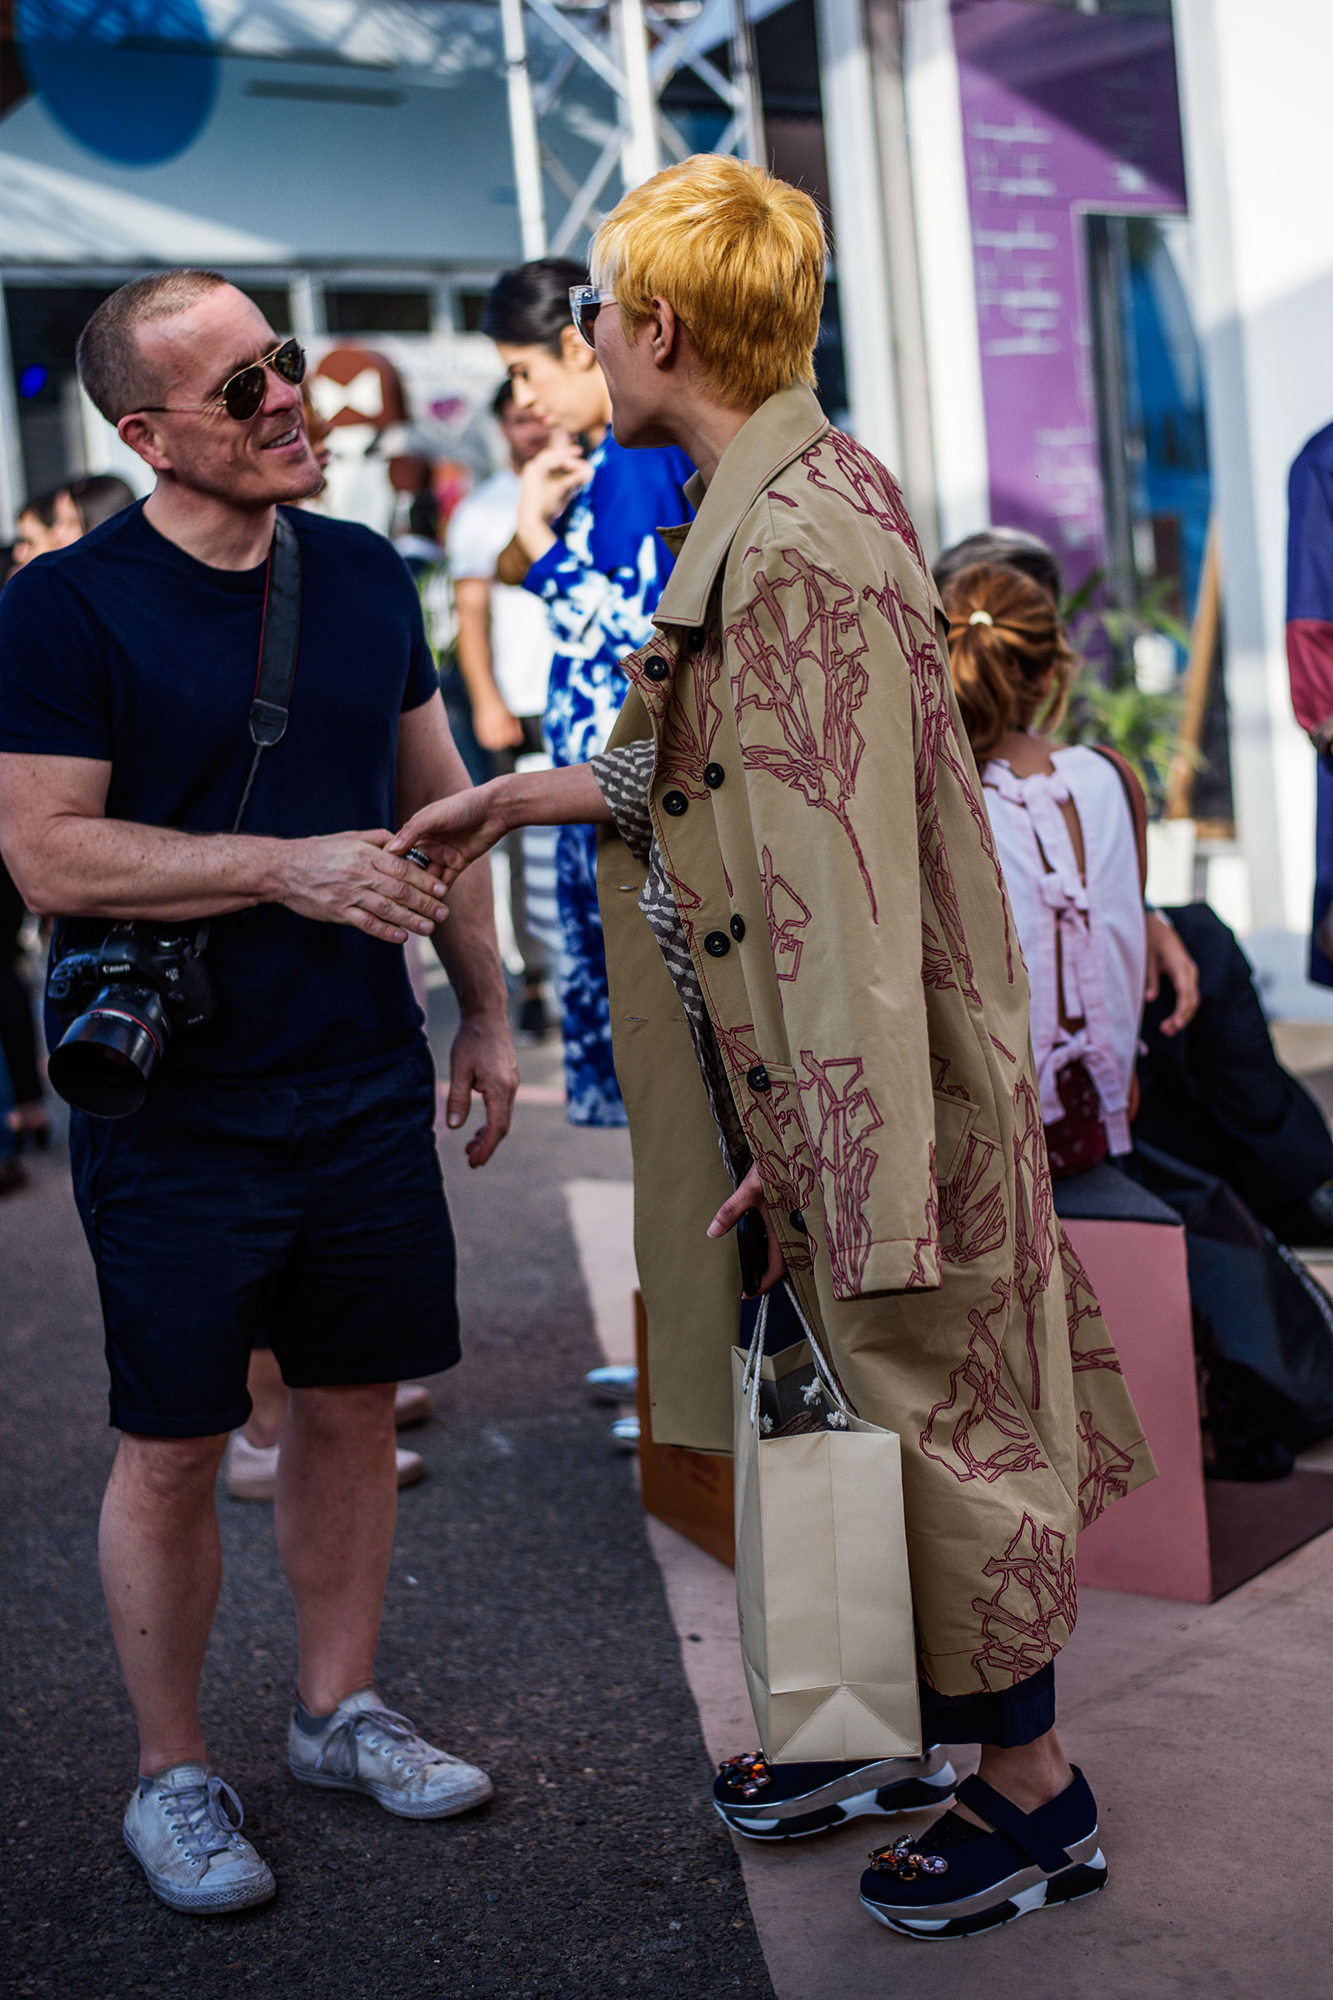 AIFW-AW17-Streetstyle-The Sartorial-Scott Schuman-Rawky-Ksh-6